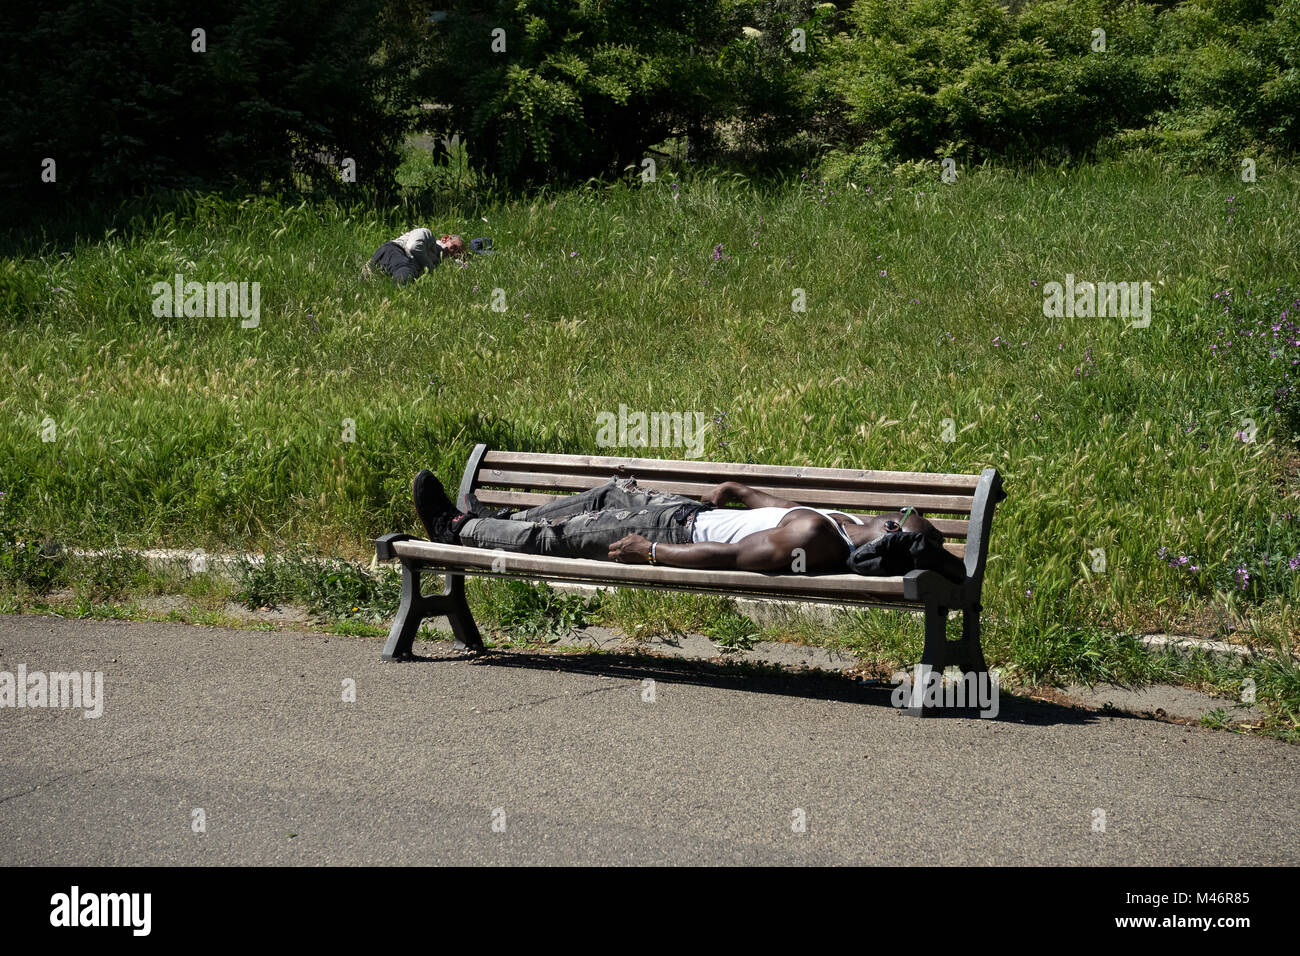 Rome, Italy: A black boy sleeps on a bench in the sun - Stock Image